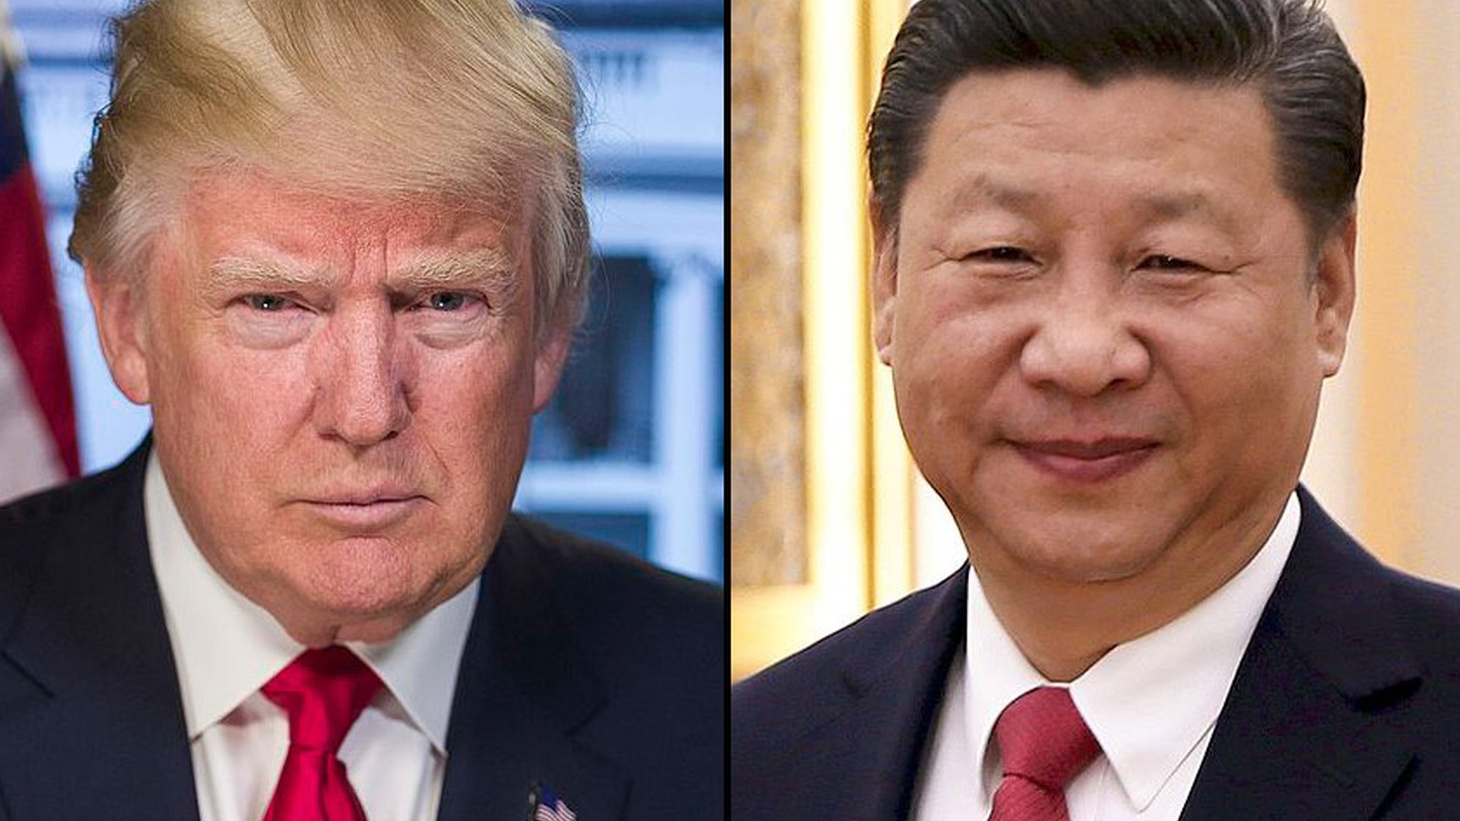 We get a preview of the potential benefits — and potential risks — of this week's summit meeting of the Presidents of the US and China.